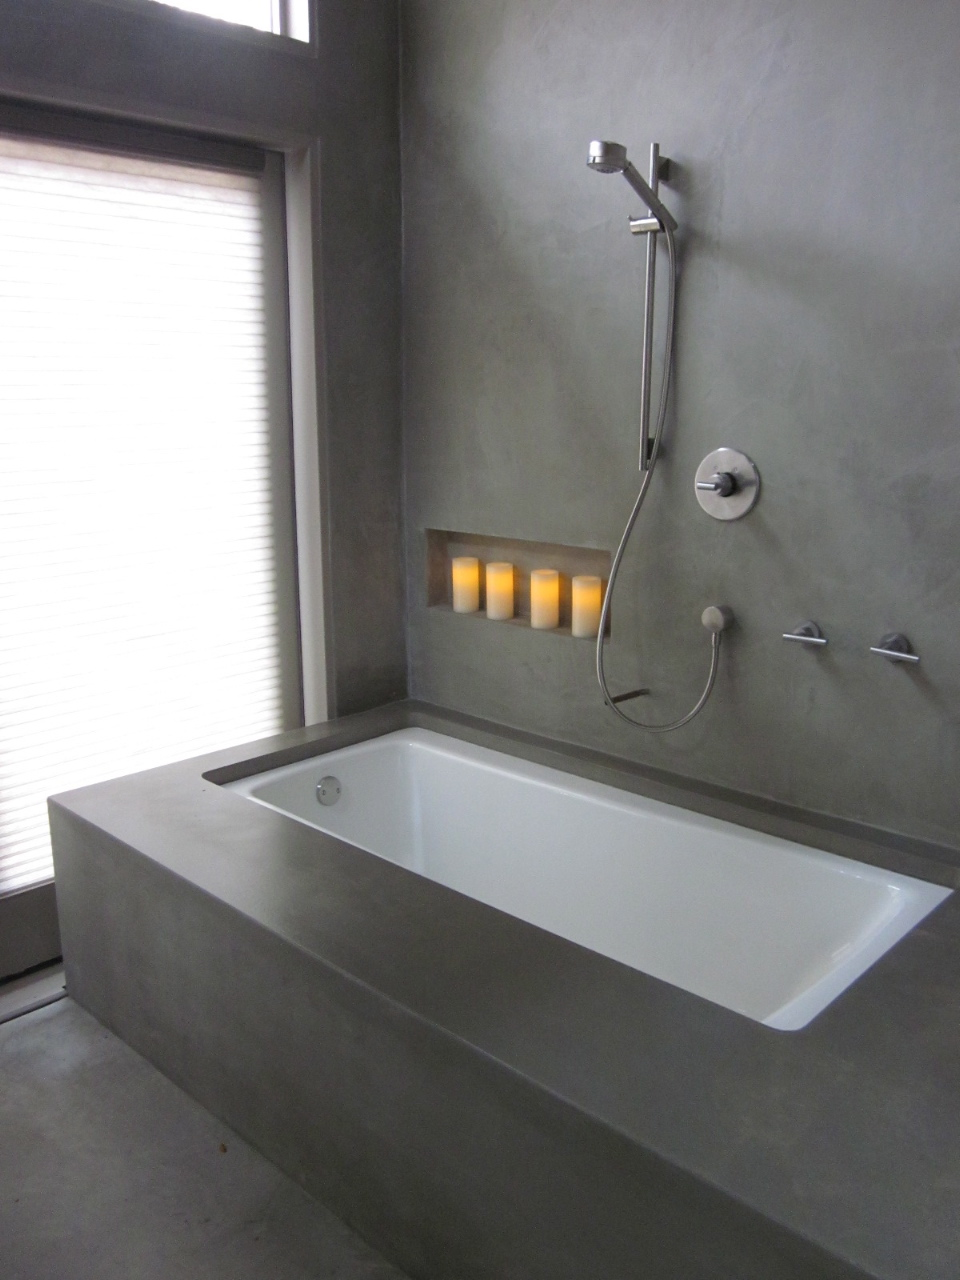 30 Cool Pictures And Ideas Of Vinyl Wall Tiles For Bathroom